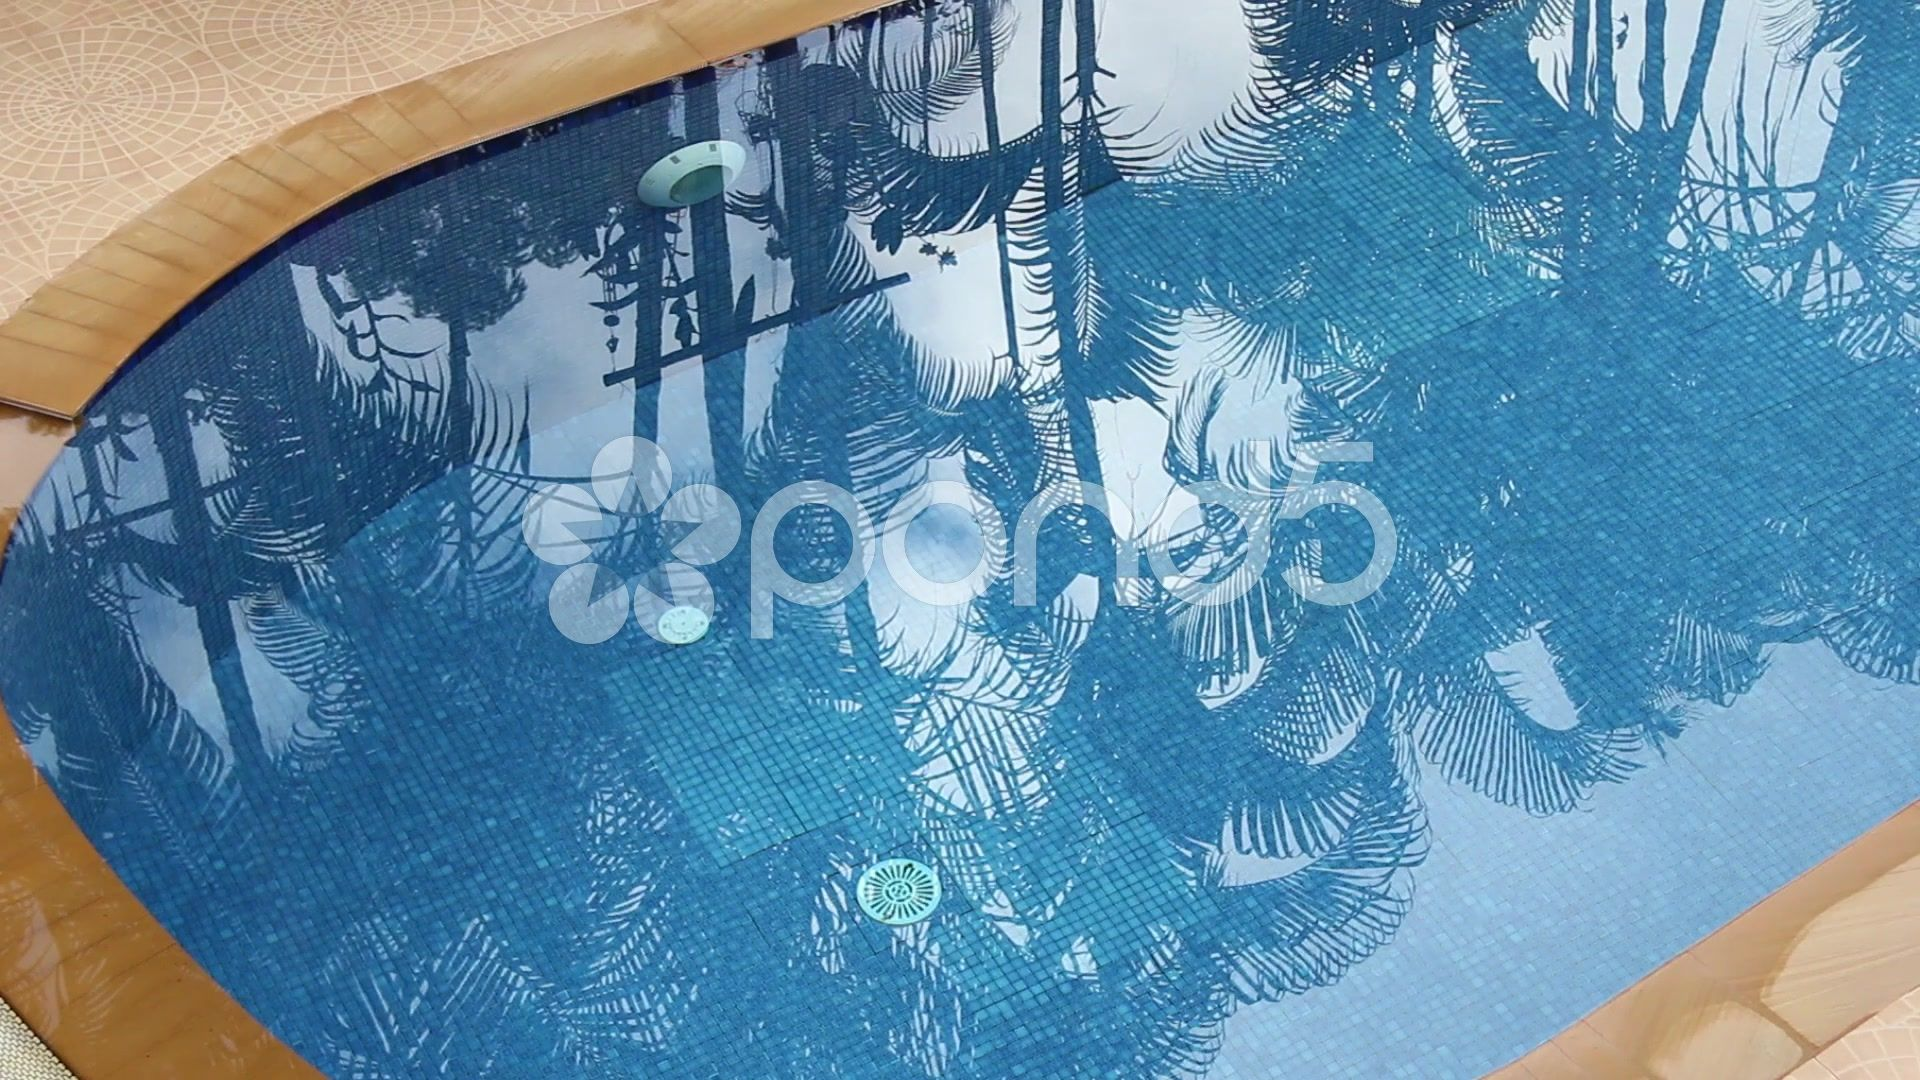 Swimming Pool in Phuket Thailand - Stock Footage   by JahnProductions